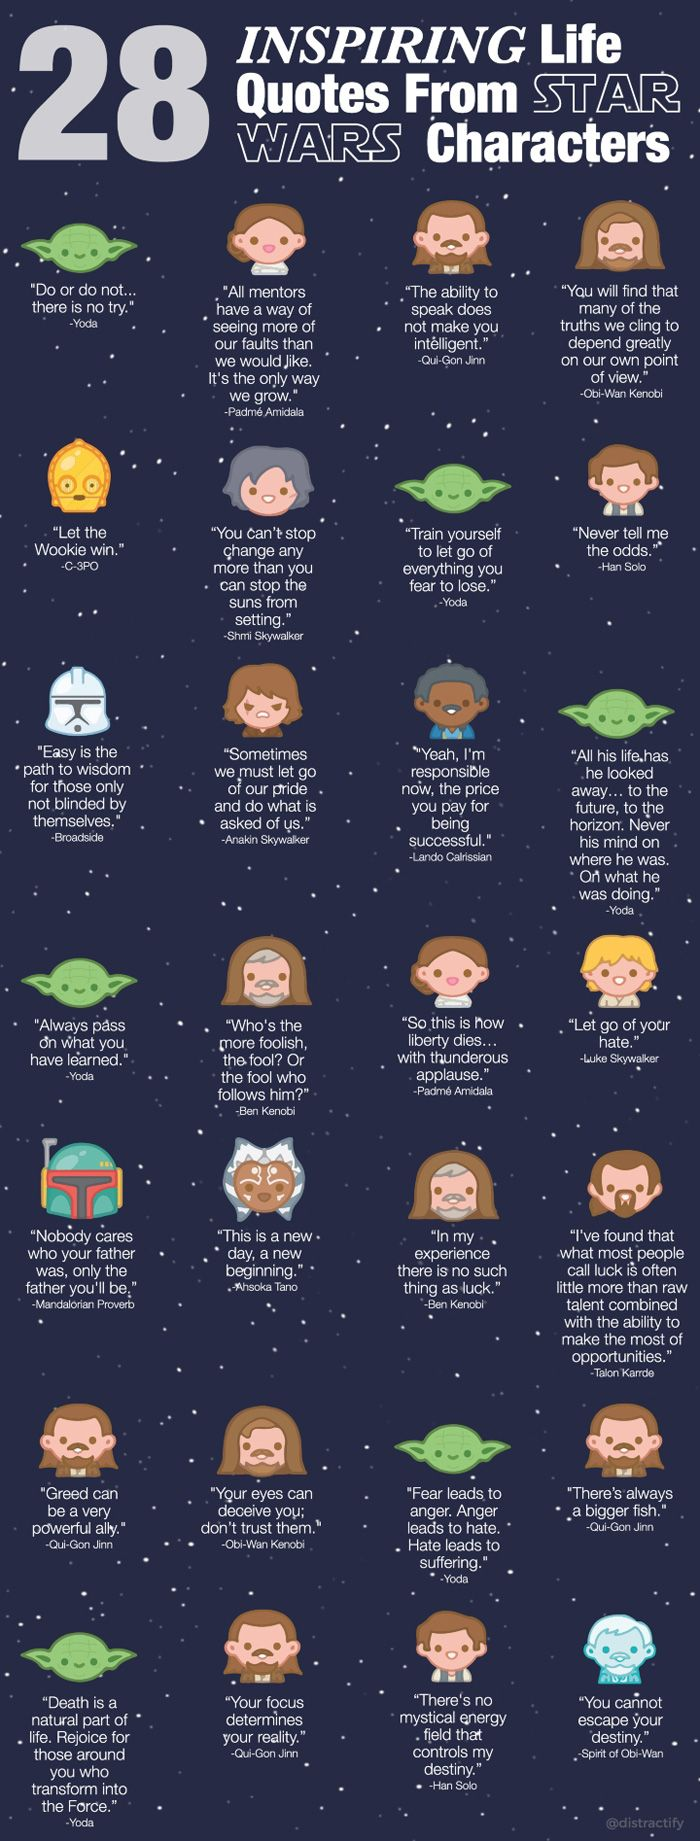 28 Wise Life Quotes From Star Wars http://geekxgirls.com/article.php?ID=7115